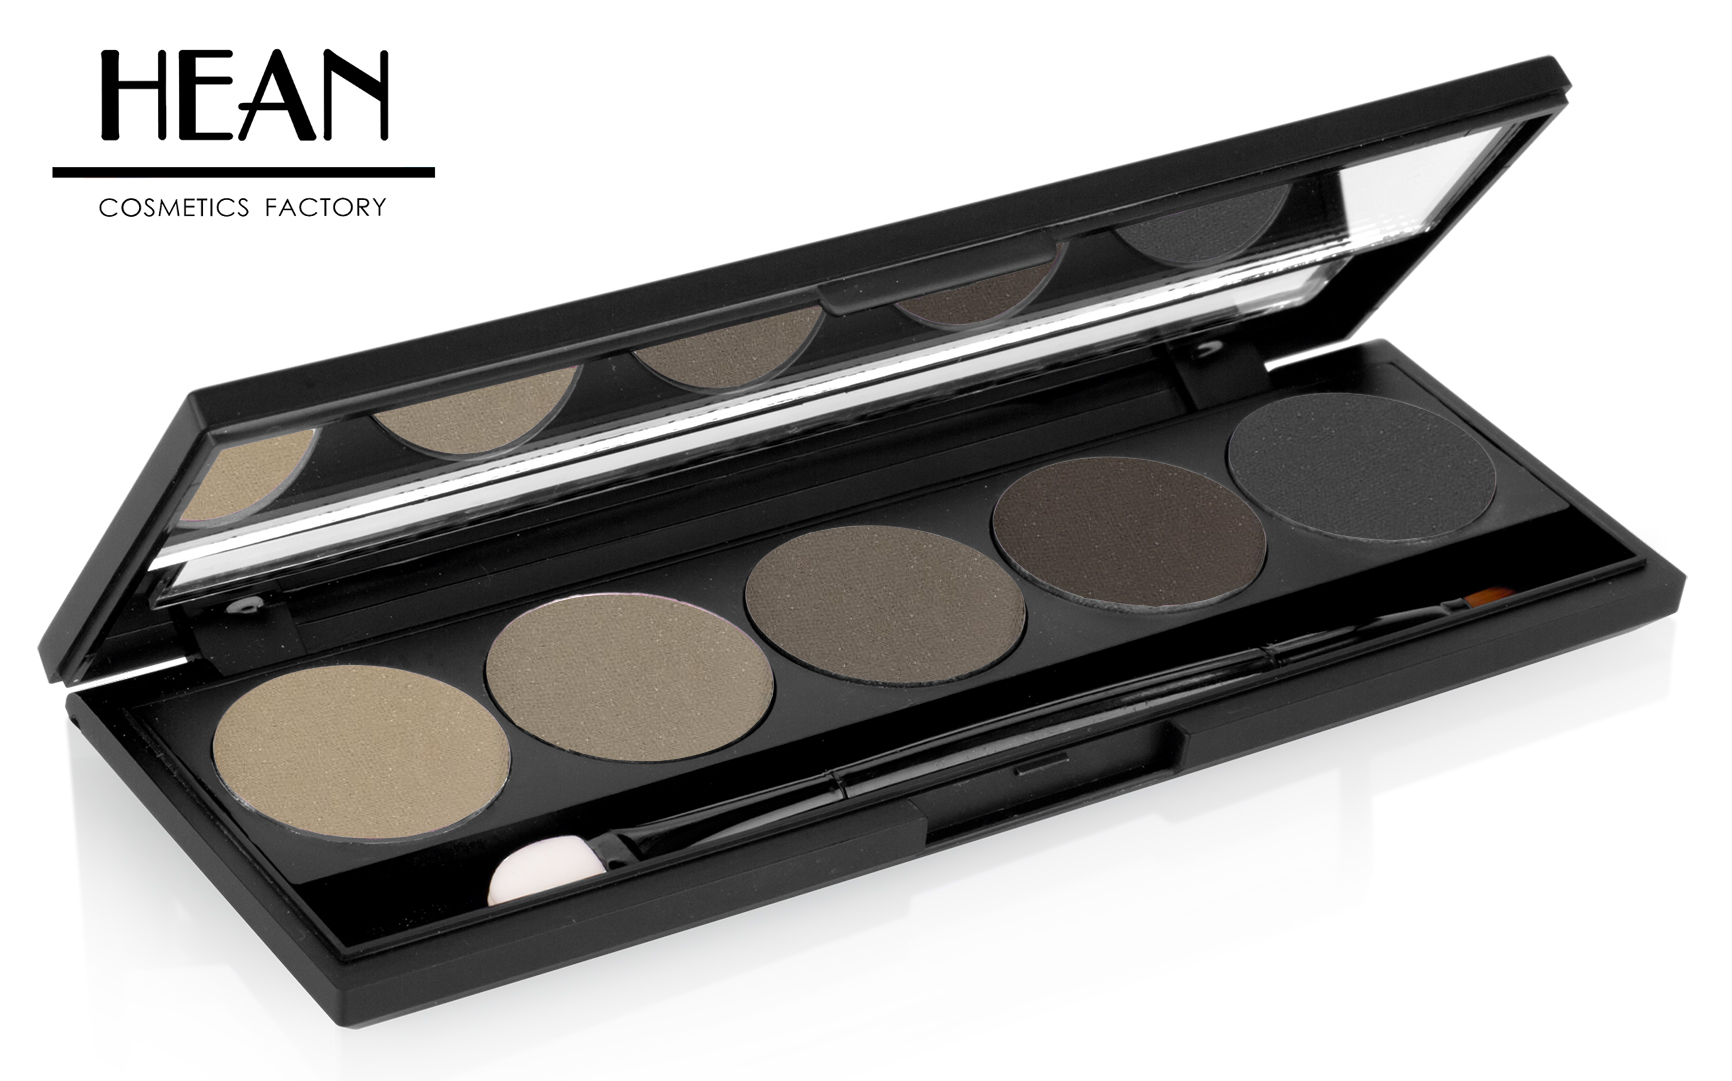 5 HD magnetic palette with HD refill eyebrow & eyeshadows